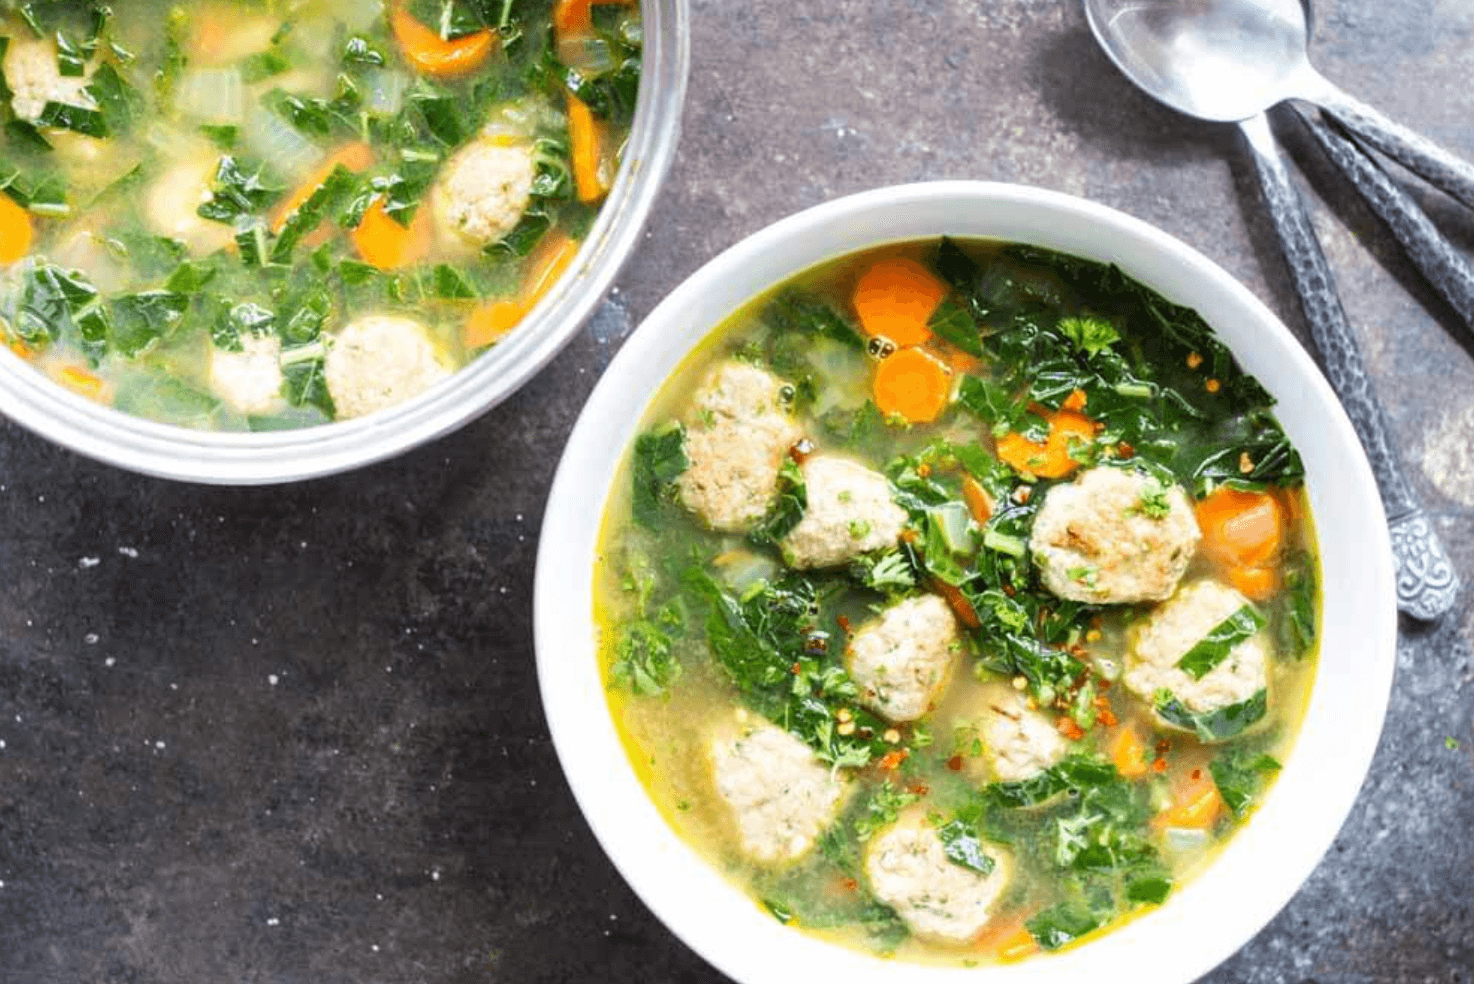 Chicken Meatball Soup with Kale Chicken Meatball Soup with Kale new images